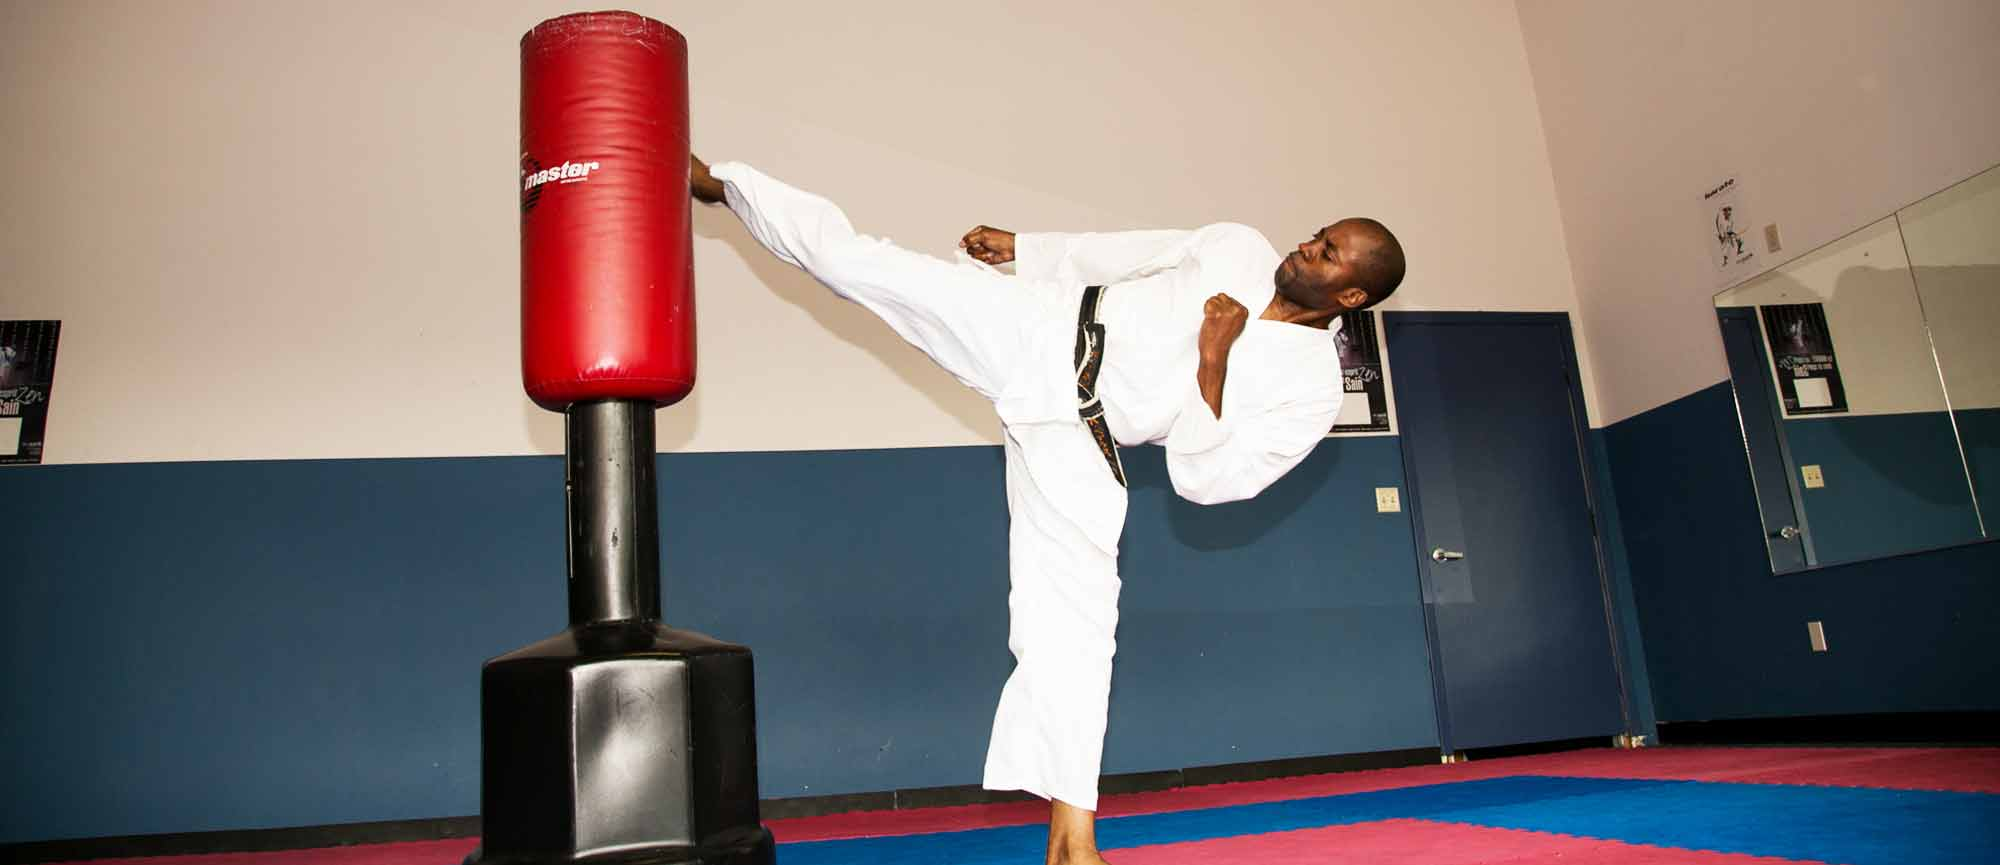 Alex Ndem kicking in Olympic Karate and Sports Center Houston dojo